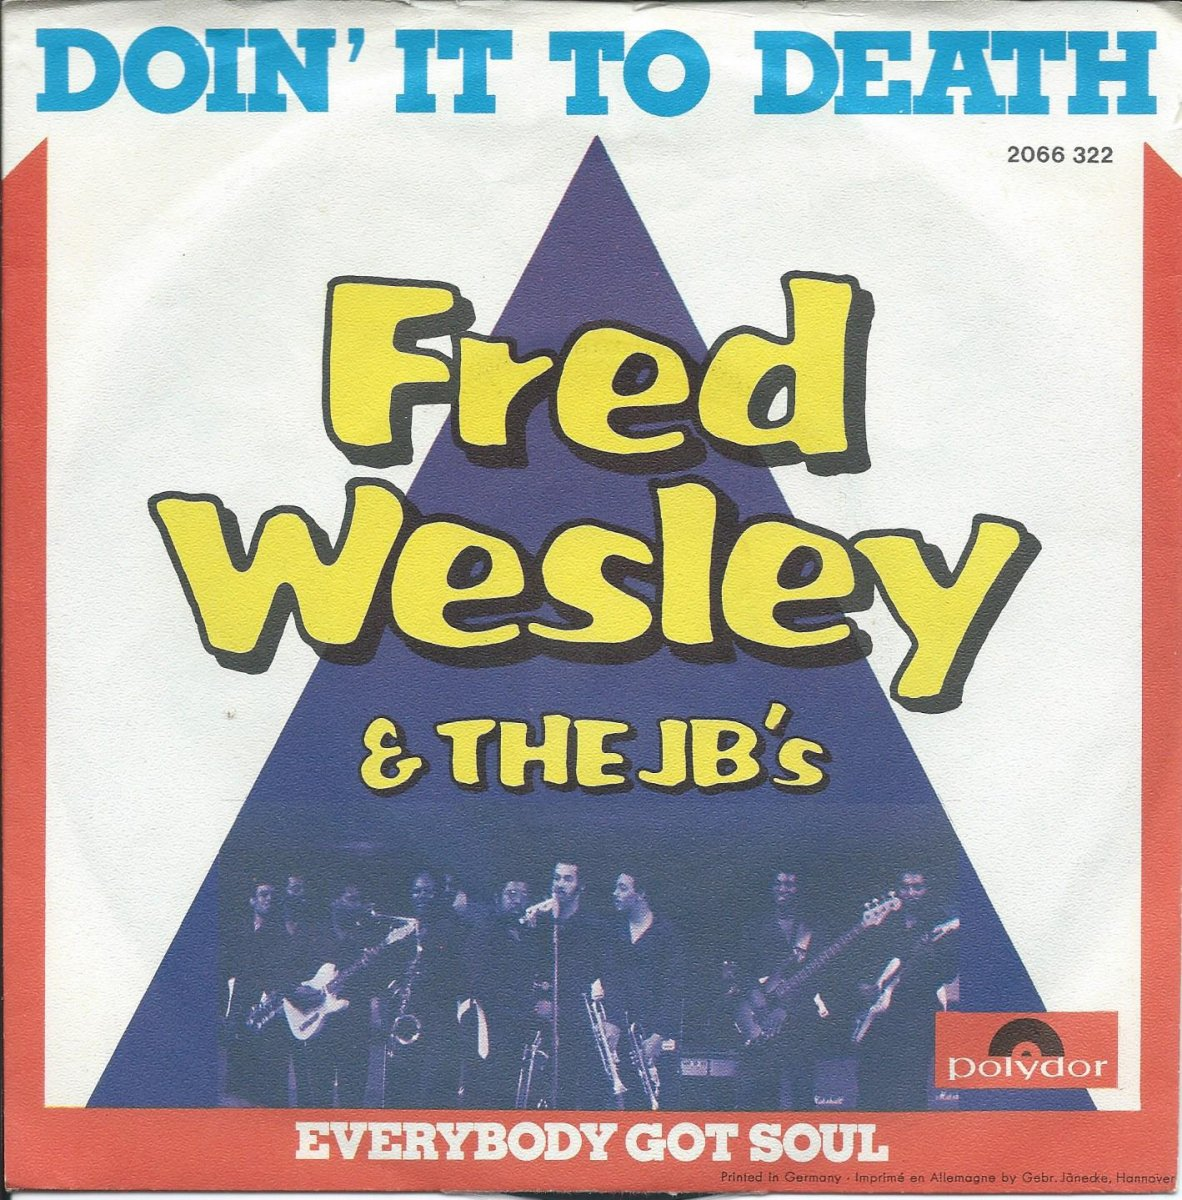 FRED WESLEY & THE JB'S ‎/ DOING IT TO DEATH / EVERYBODY GOT SOUL (7